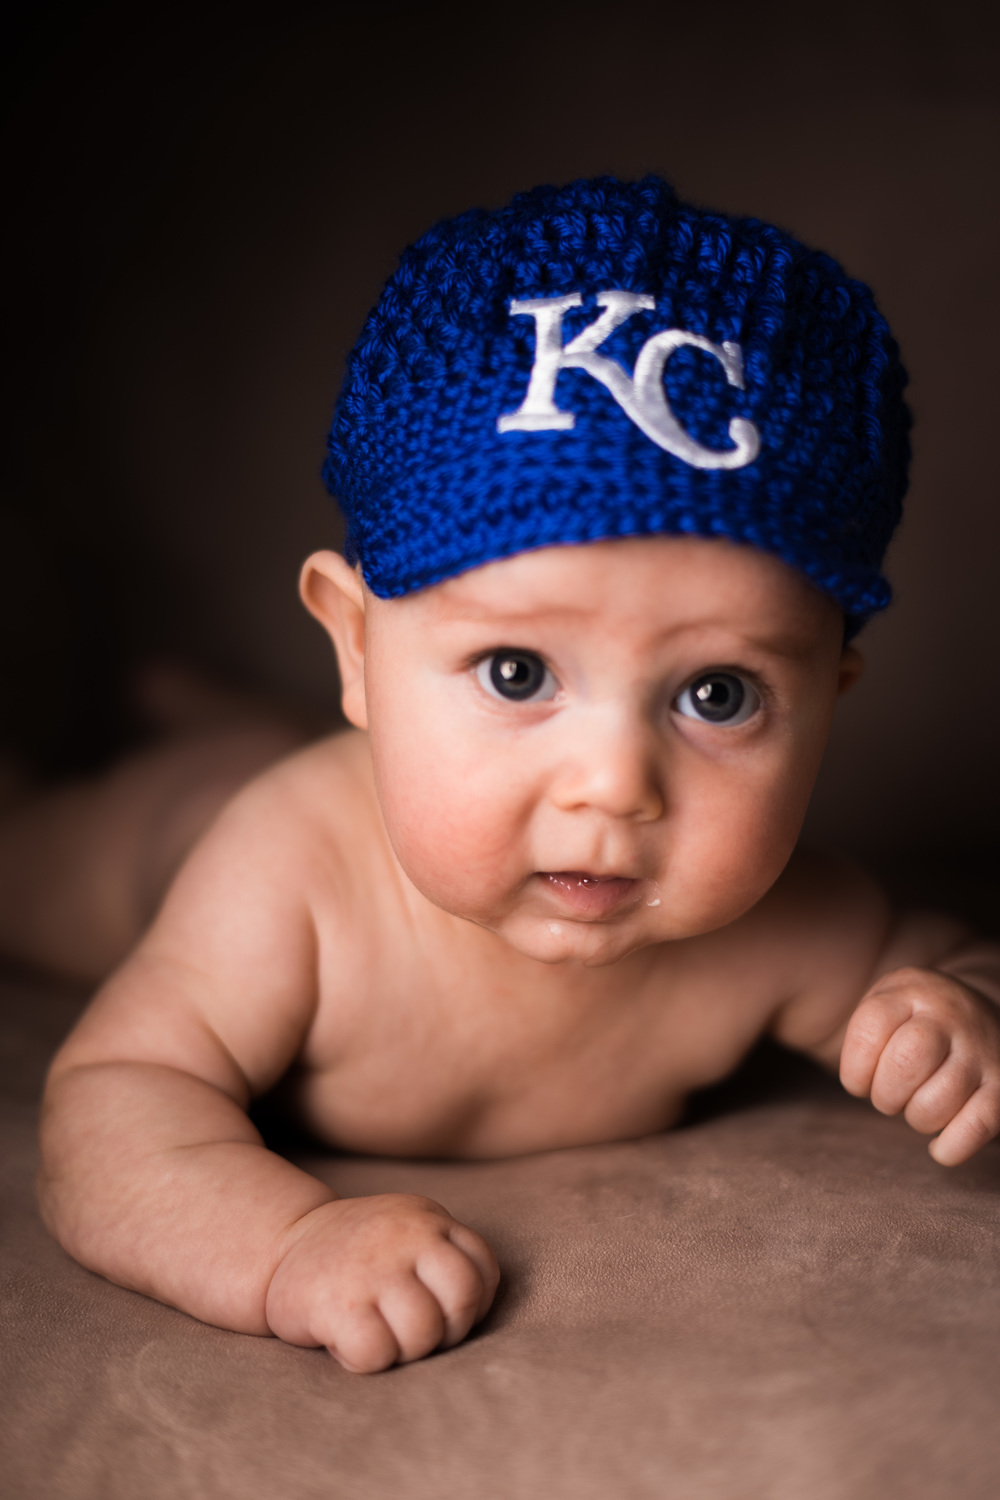 brett-smith-photo-kc-Royals3.jpg